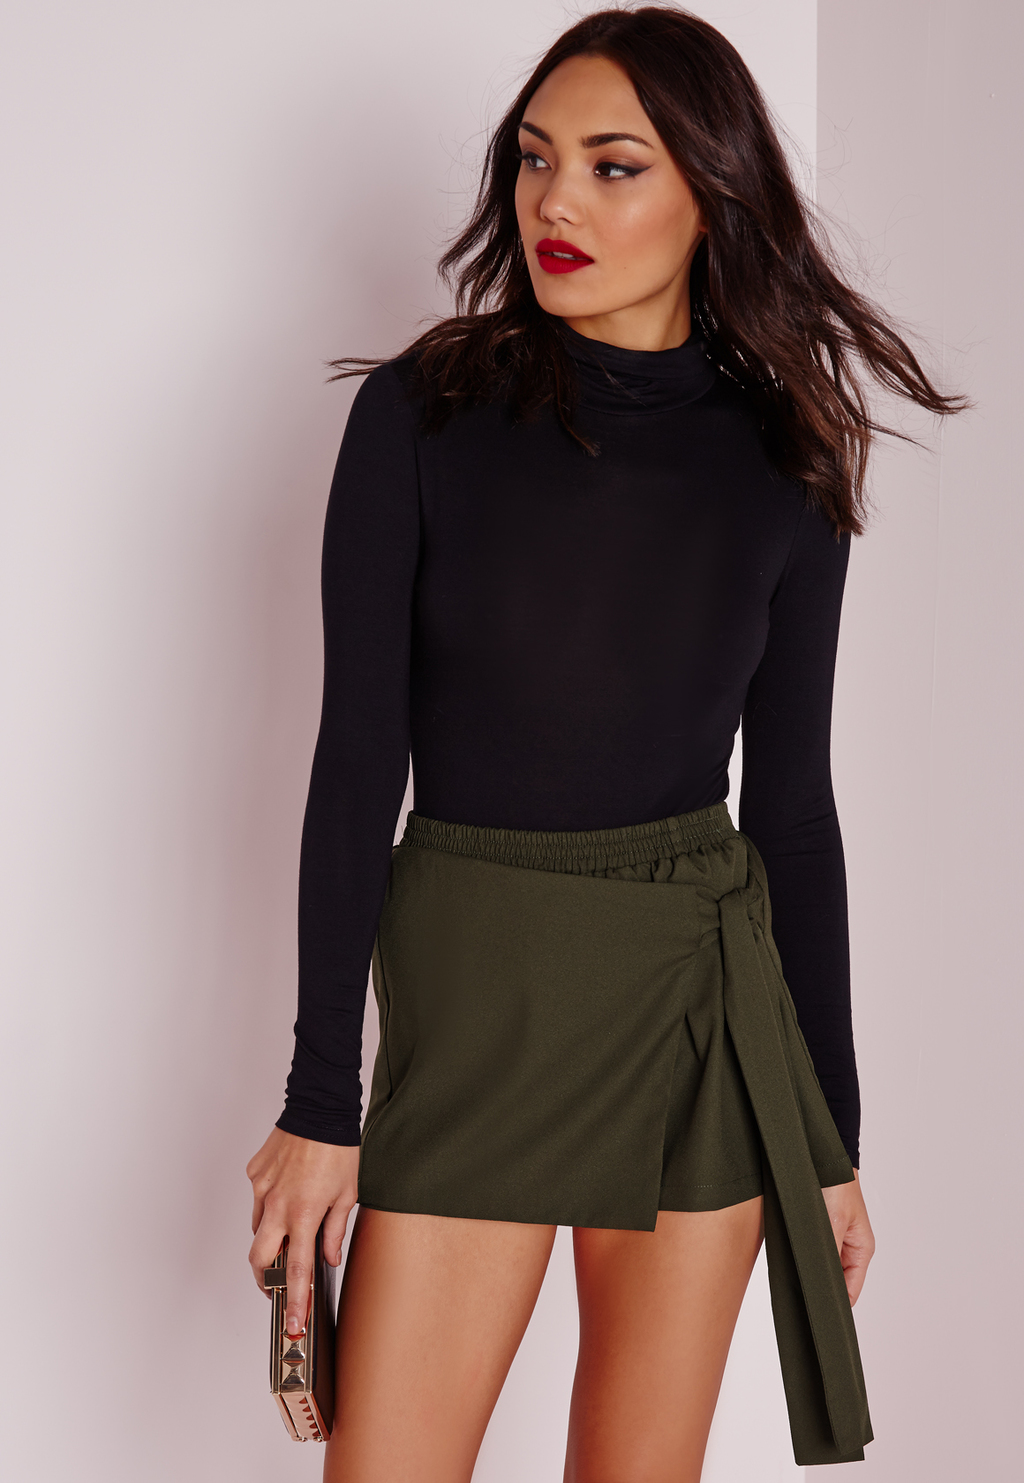 Wrap Over Tie Skort Khaki, Beige - length: mini; pattern: plain; fit: tight; waist: high rise; predominant colour: khaki; occasions: evening; style: mini skirt; fibres: cotton - stretch; texture group: jersey - clingy; pattern type: fabric; season: s/s 2016; wardrobe: event